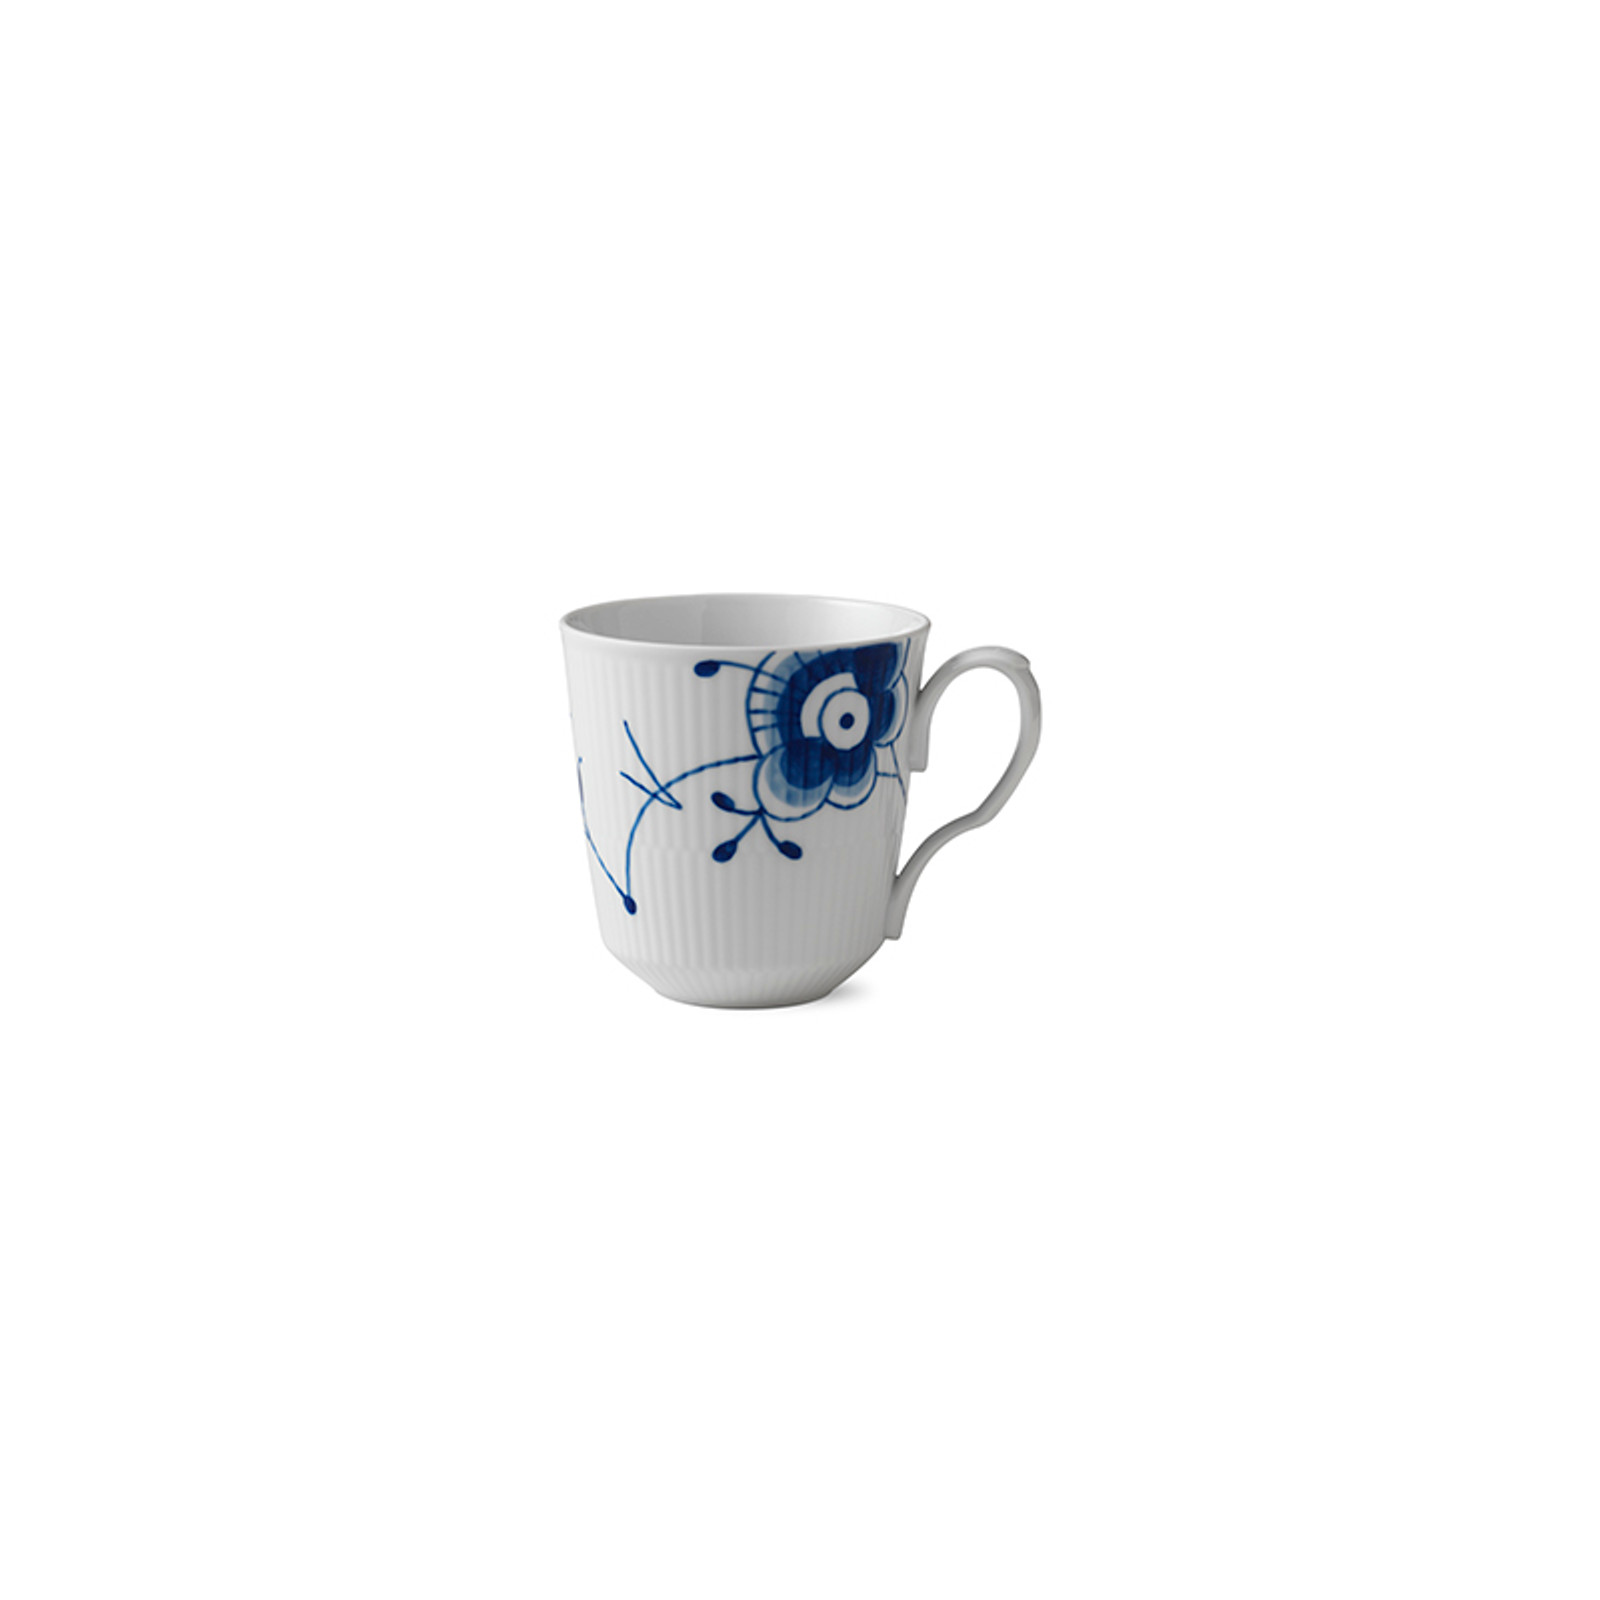 Royal Copenhagen Blue Fluted Mega Latte Mug with Handle, 15.5 oz